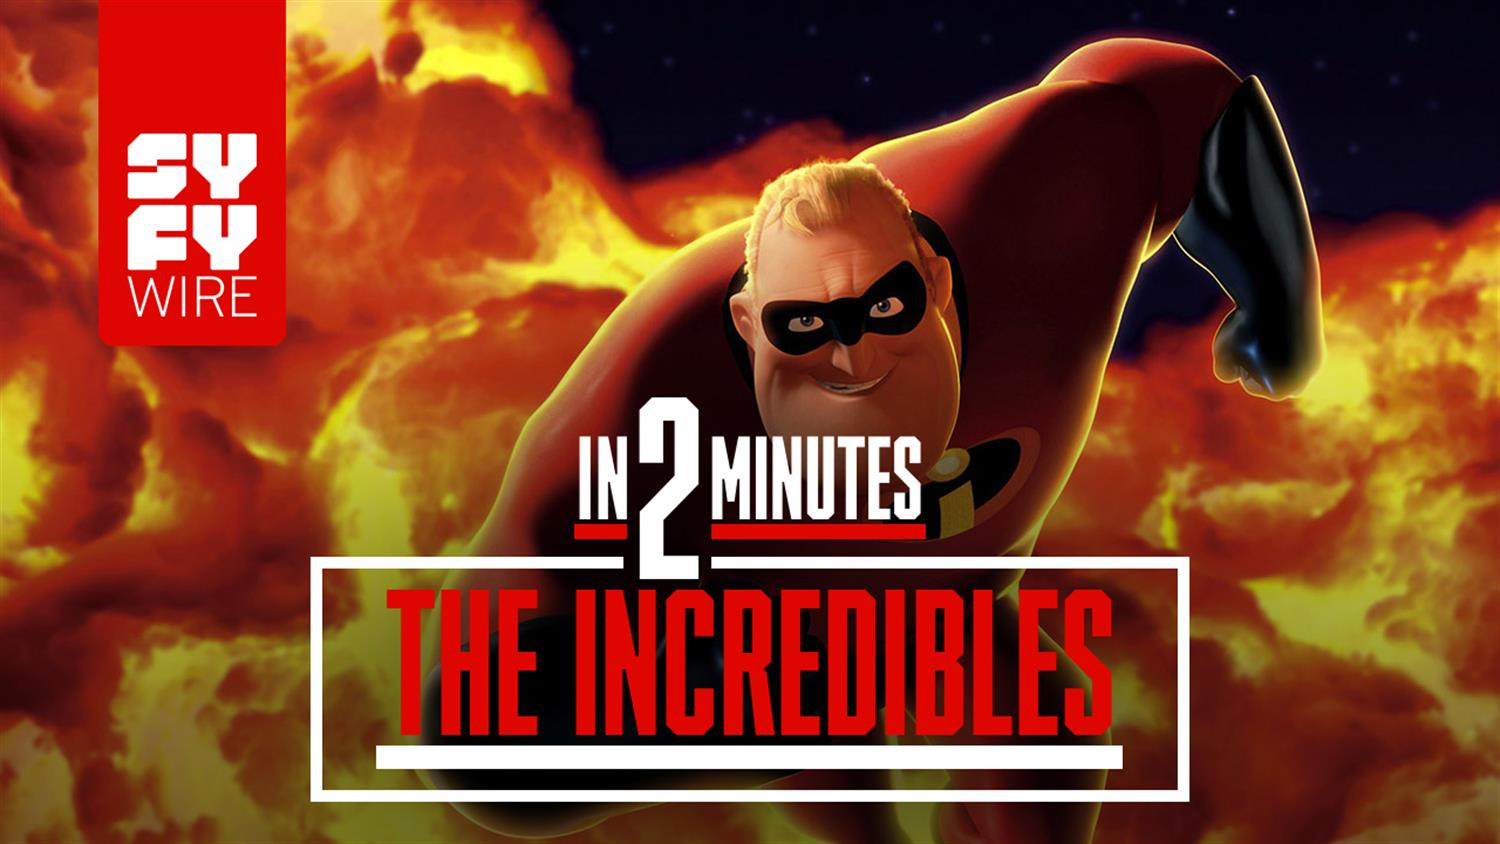 The Incredibles in 2 Minutes